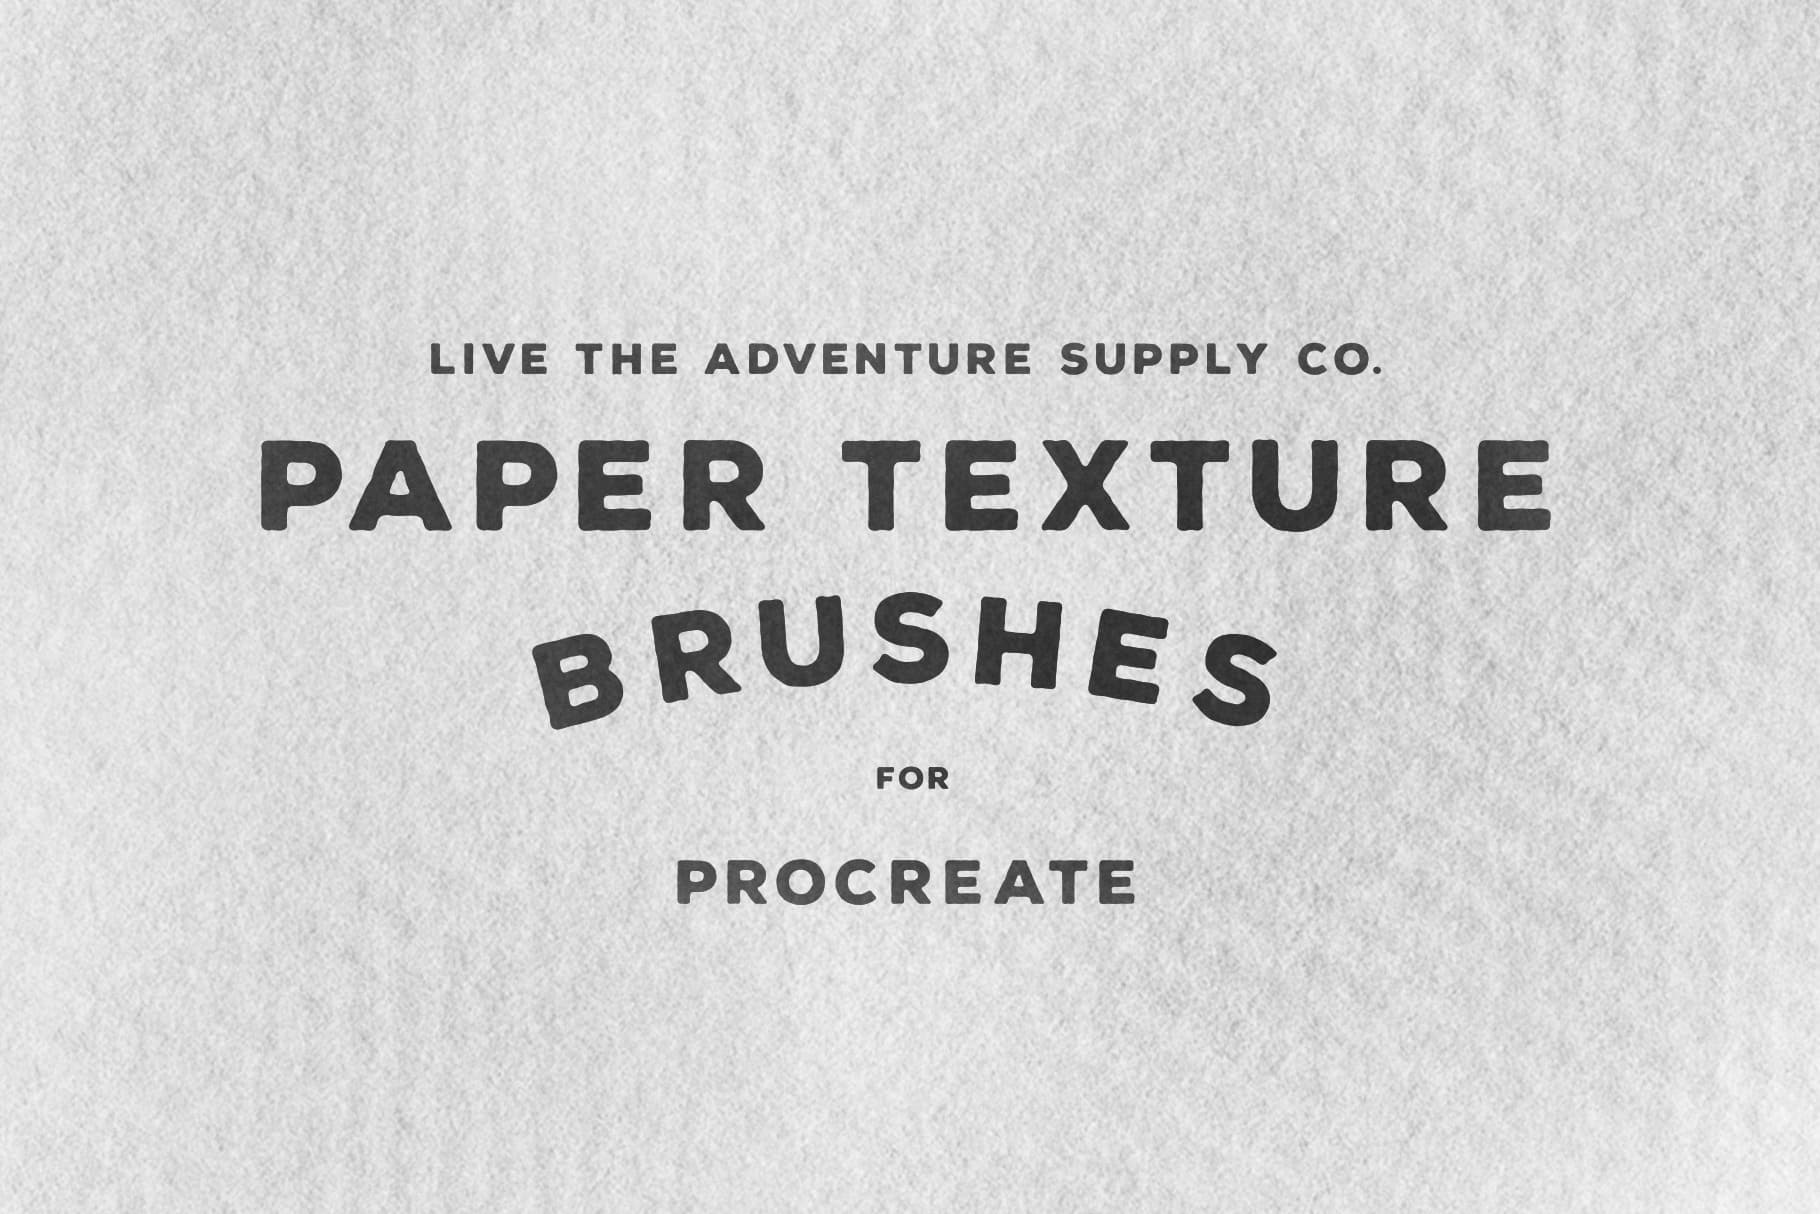 Paper Texture Brushes for Procreate